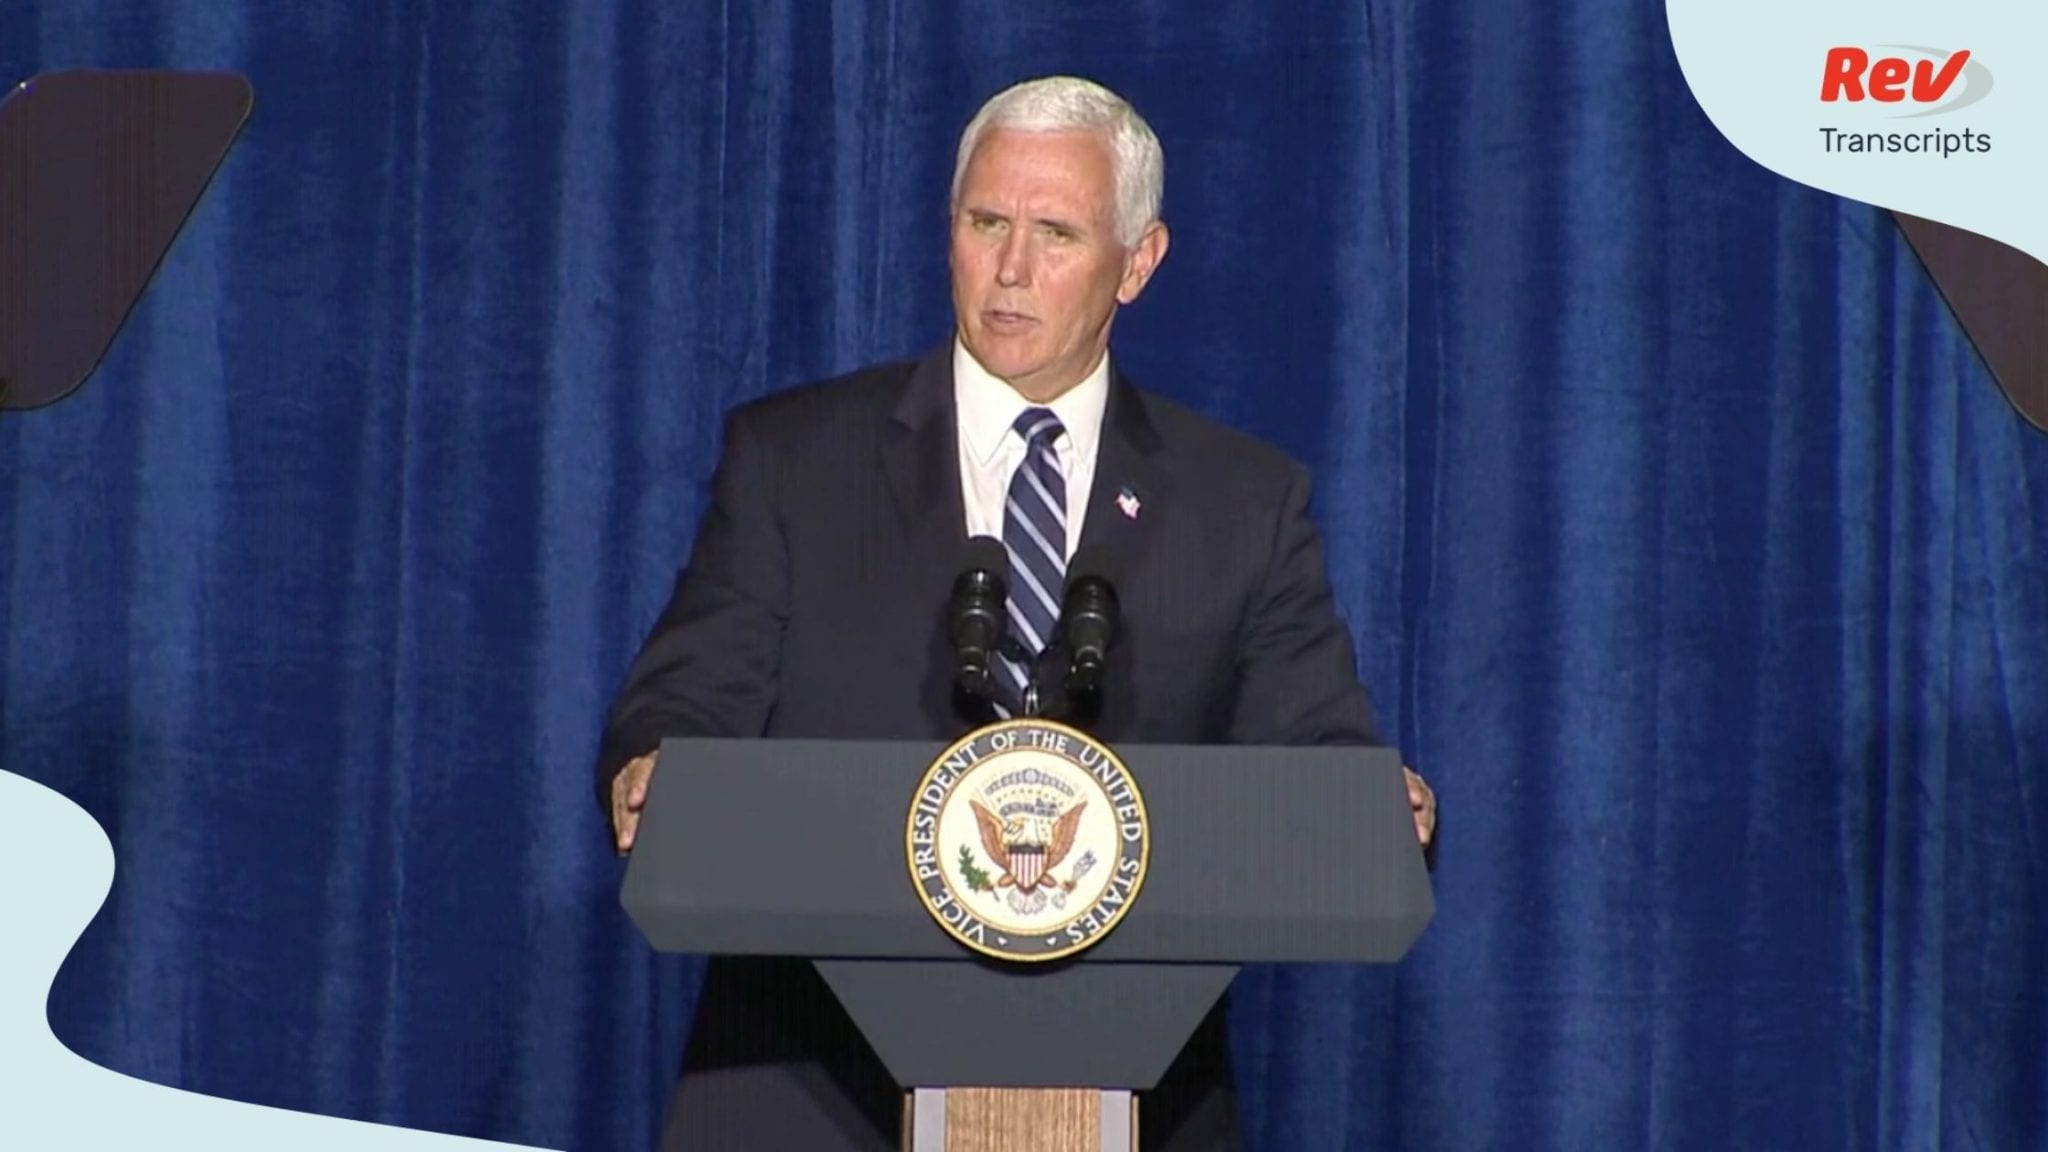 Mike Pence Speech Transcript August 11: Cops for Trump Event